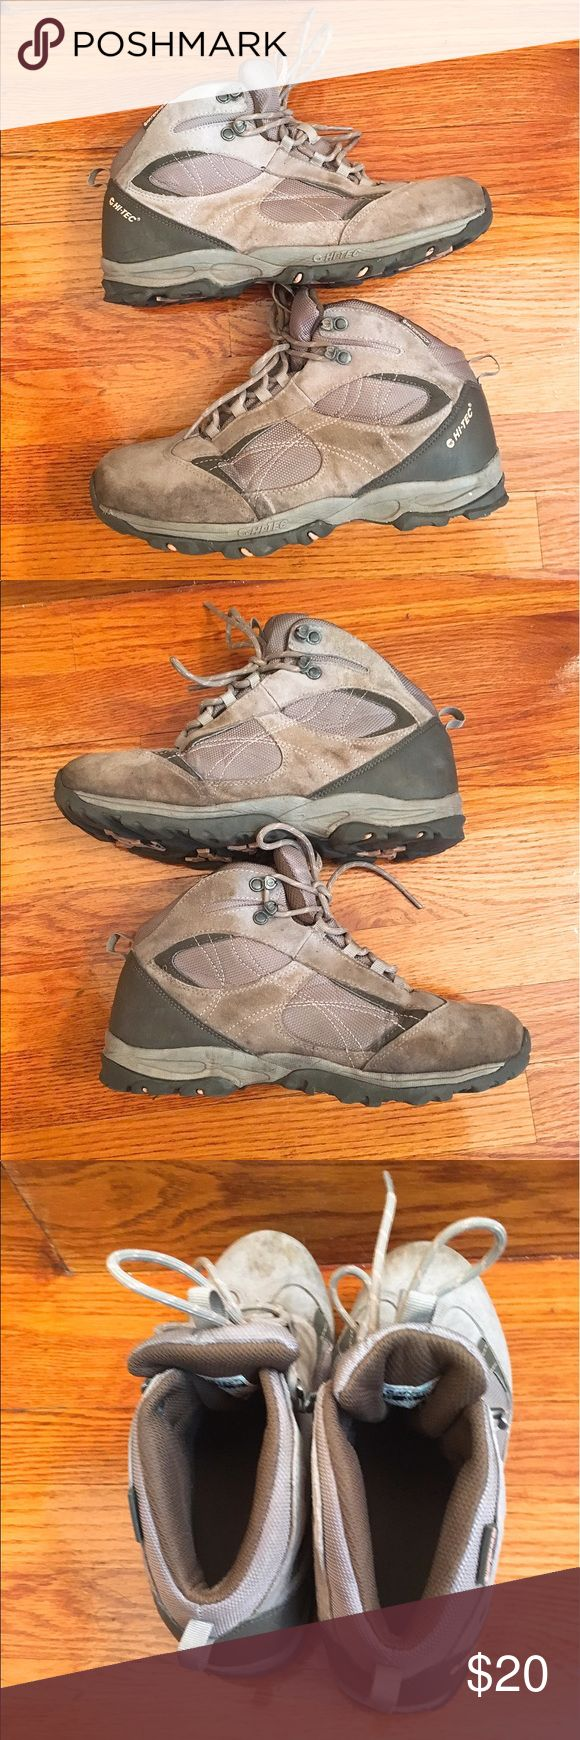 Hi-tec women's hiking boots sz8.5 Hi-tec women's hiking boots sz8.5 - grey with subtle light pink accents. These were worn on a three day hike only (c.30 miles) and have been soaked and washed. Unfortunately due to an injury my left foot is now too large for this boot! Still with tons of traction and wear left. Super comfy and well made boots. Waterproof. Hi-Tec Shoes Athletic Shoes